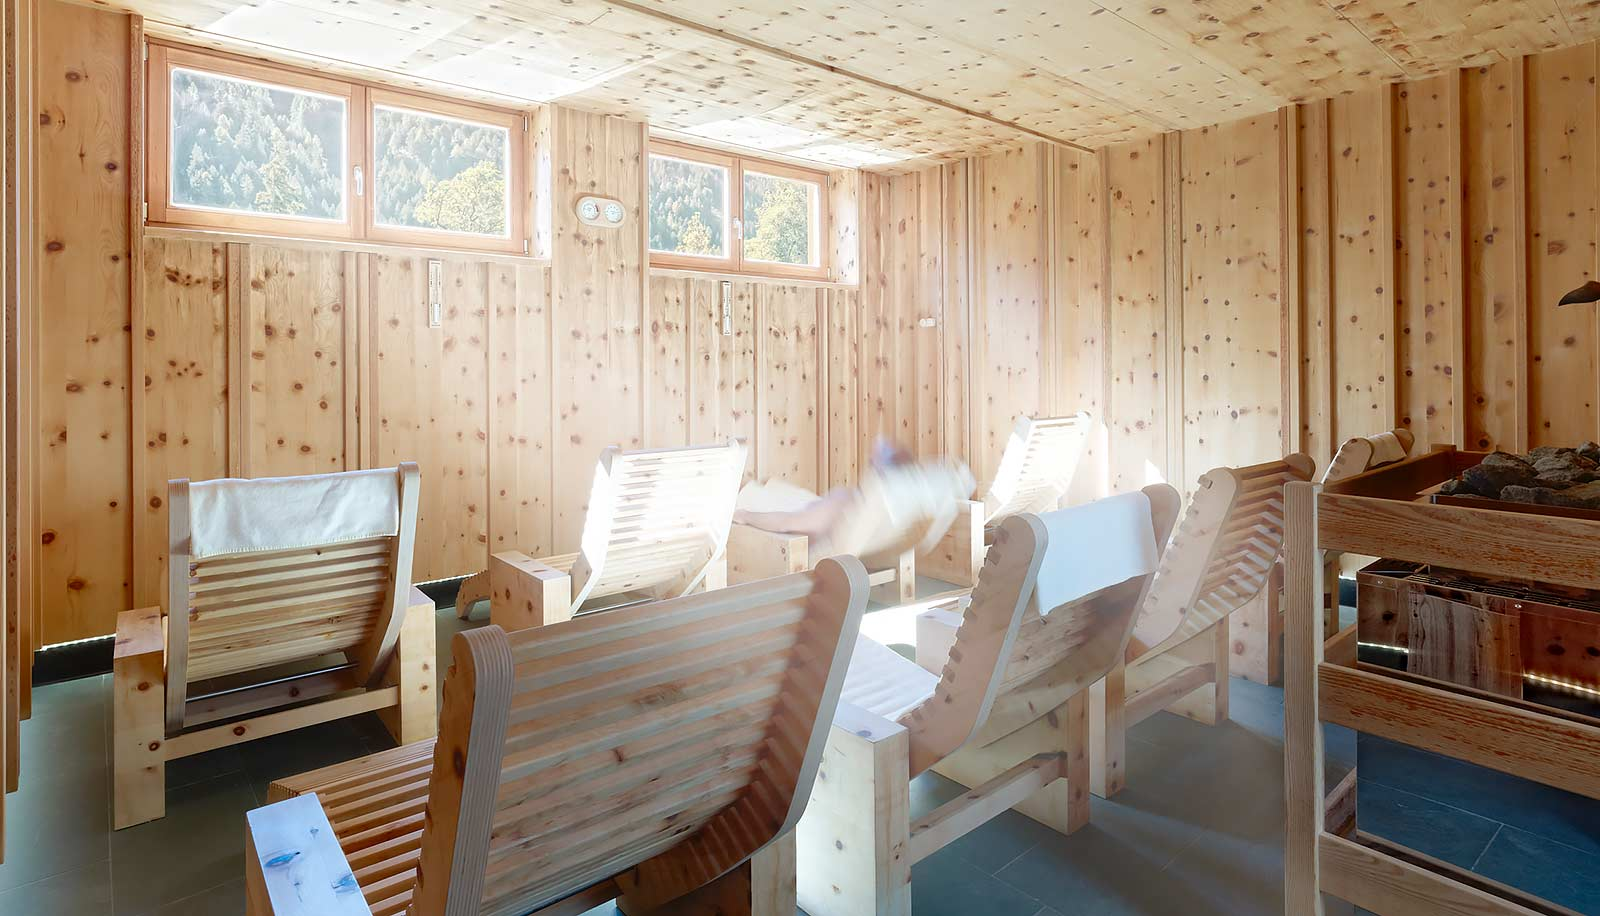 Finnish sauna with wooden lounge beds at Arosea Life Balance Hotel in Ultental-Val d'Ultimo